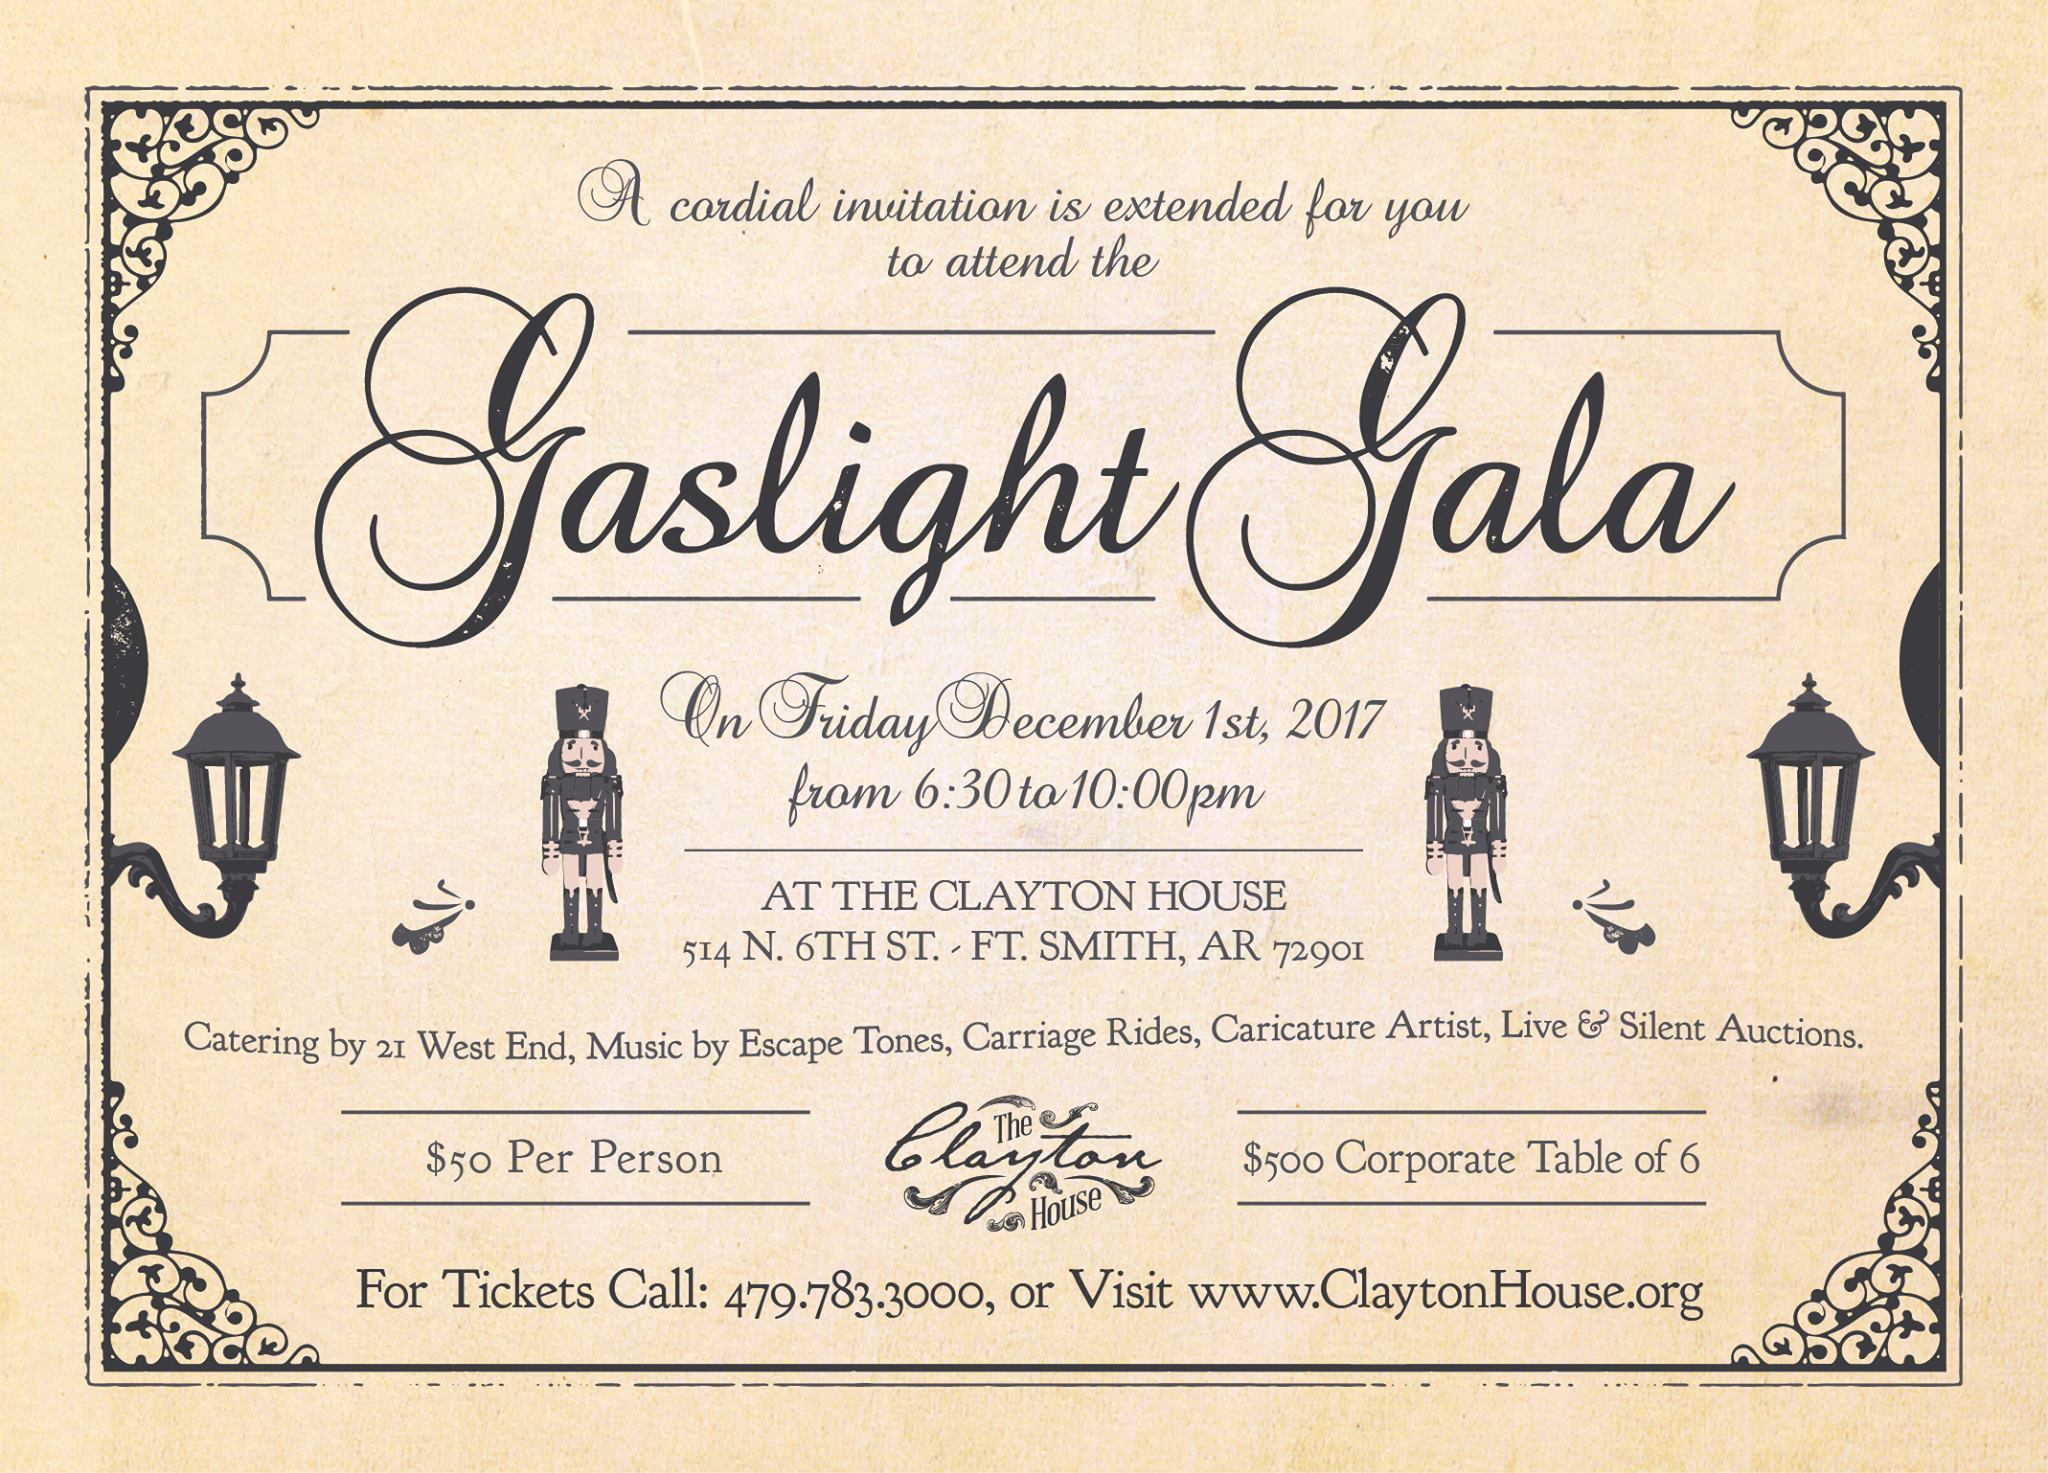 Clayton House Gaslight Gala 2017 - Things To Do in Fort Smith